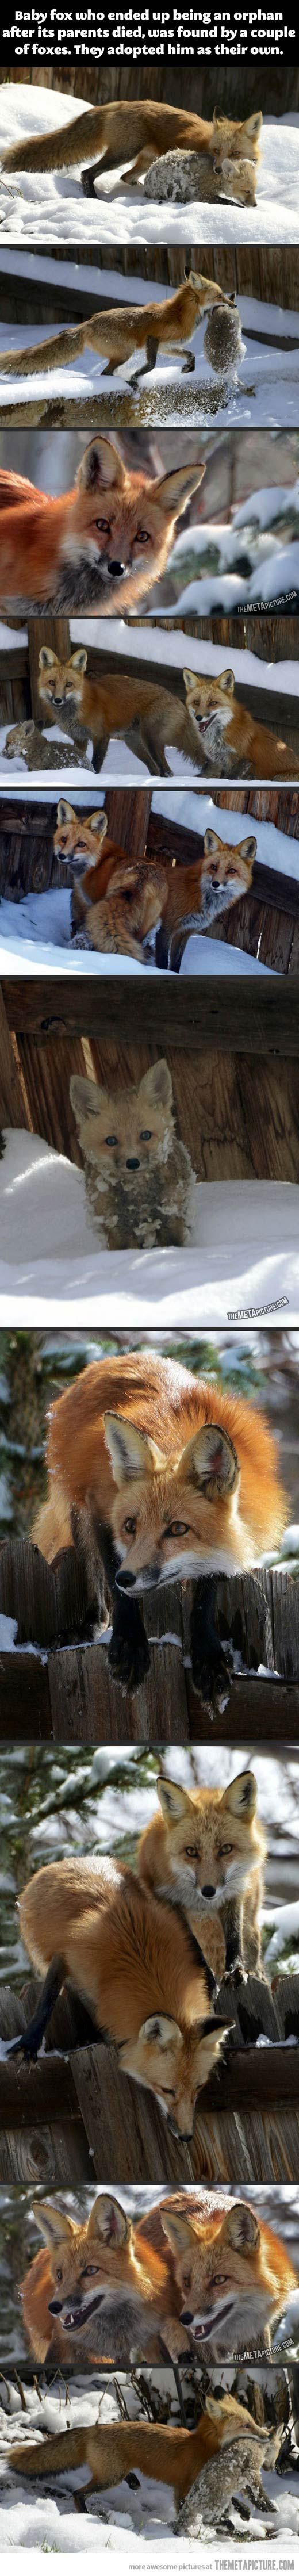 best images about aww love on pinterest